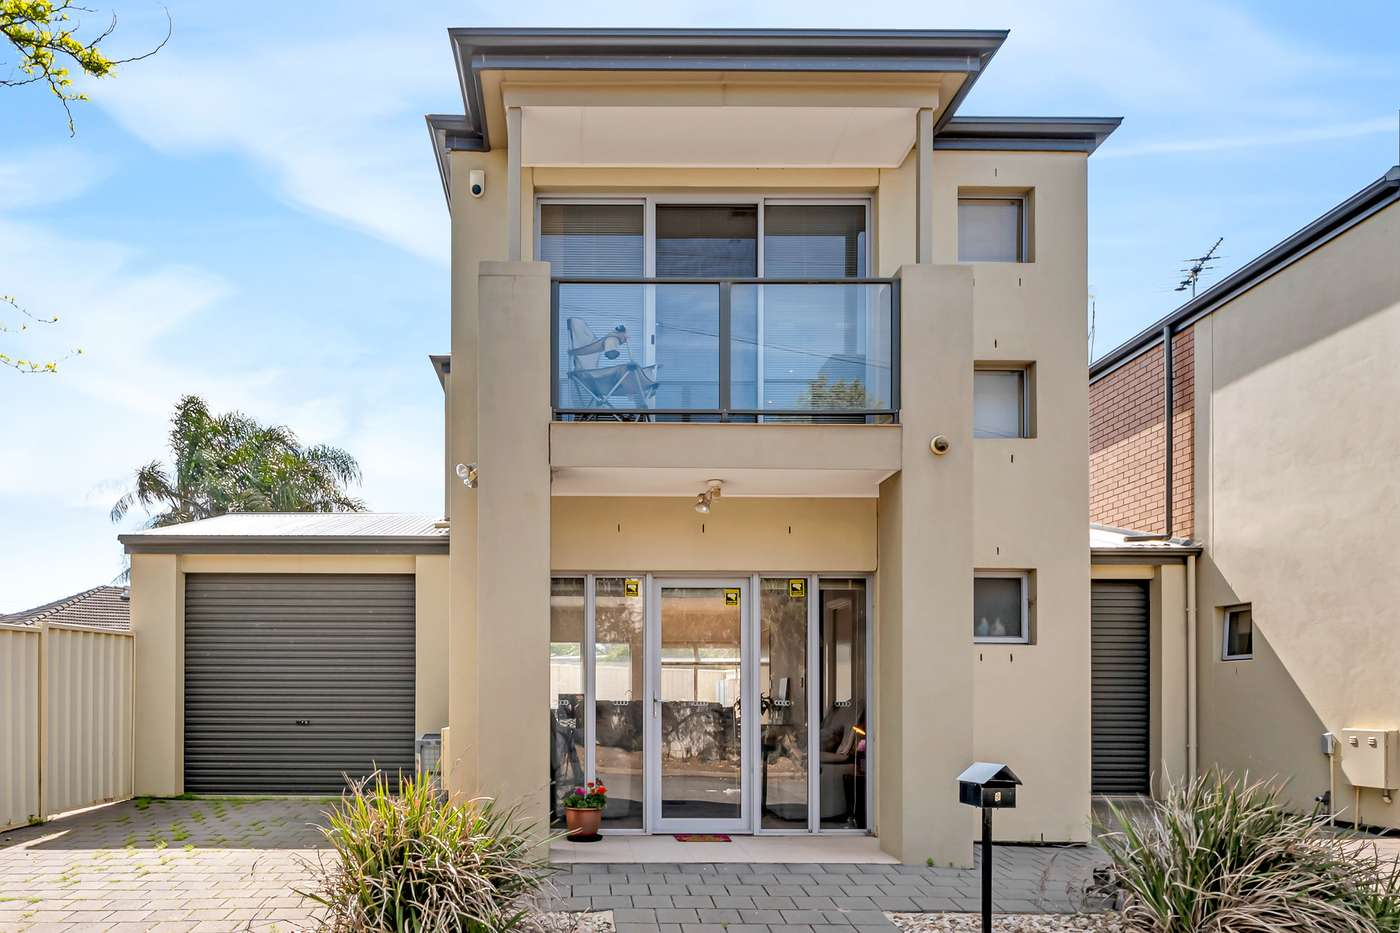 Main view of Homely house listing, 9 Leslie Place, Port Adelaide, SA 5015